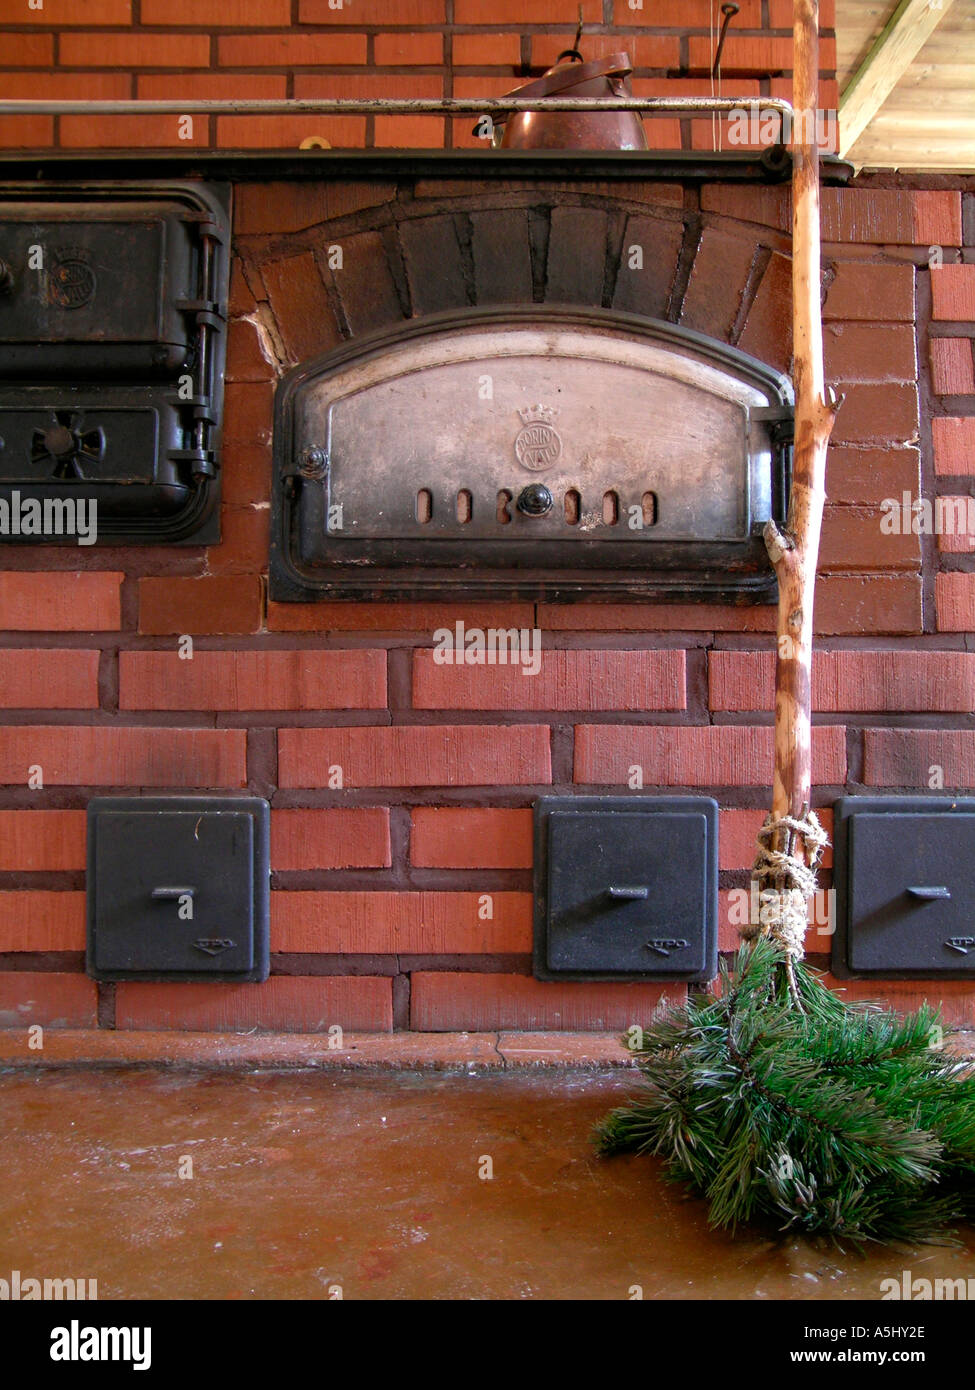 PR Old Wood Heated Kitchen Stove With Baking Oven Made Of Stone A Broom Branches Pines